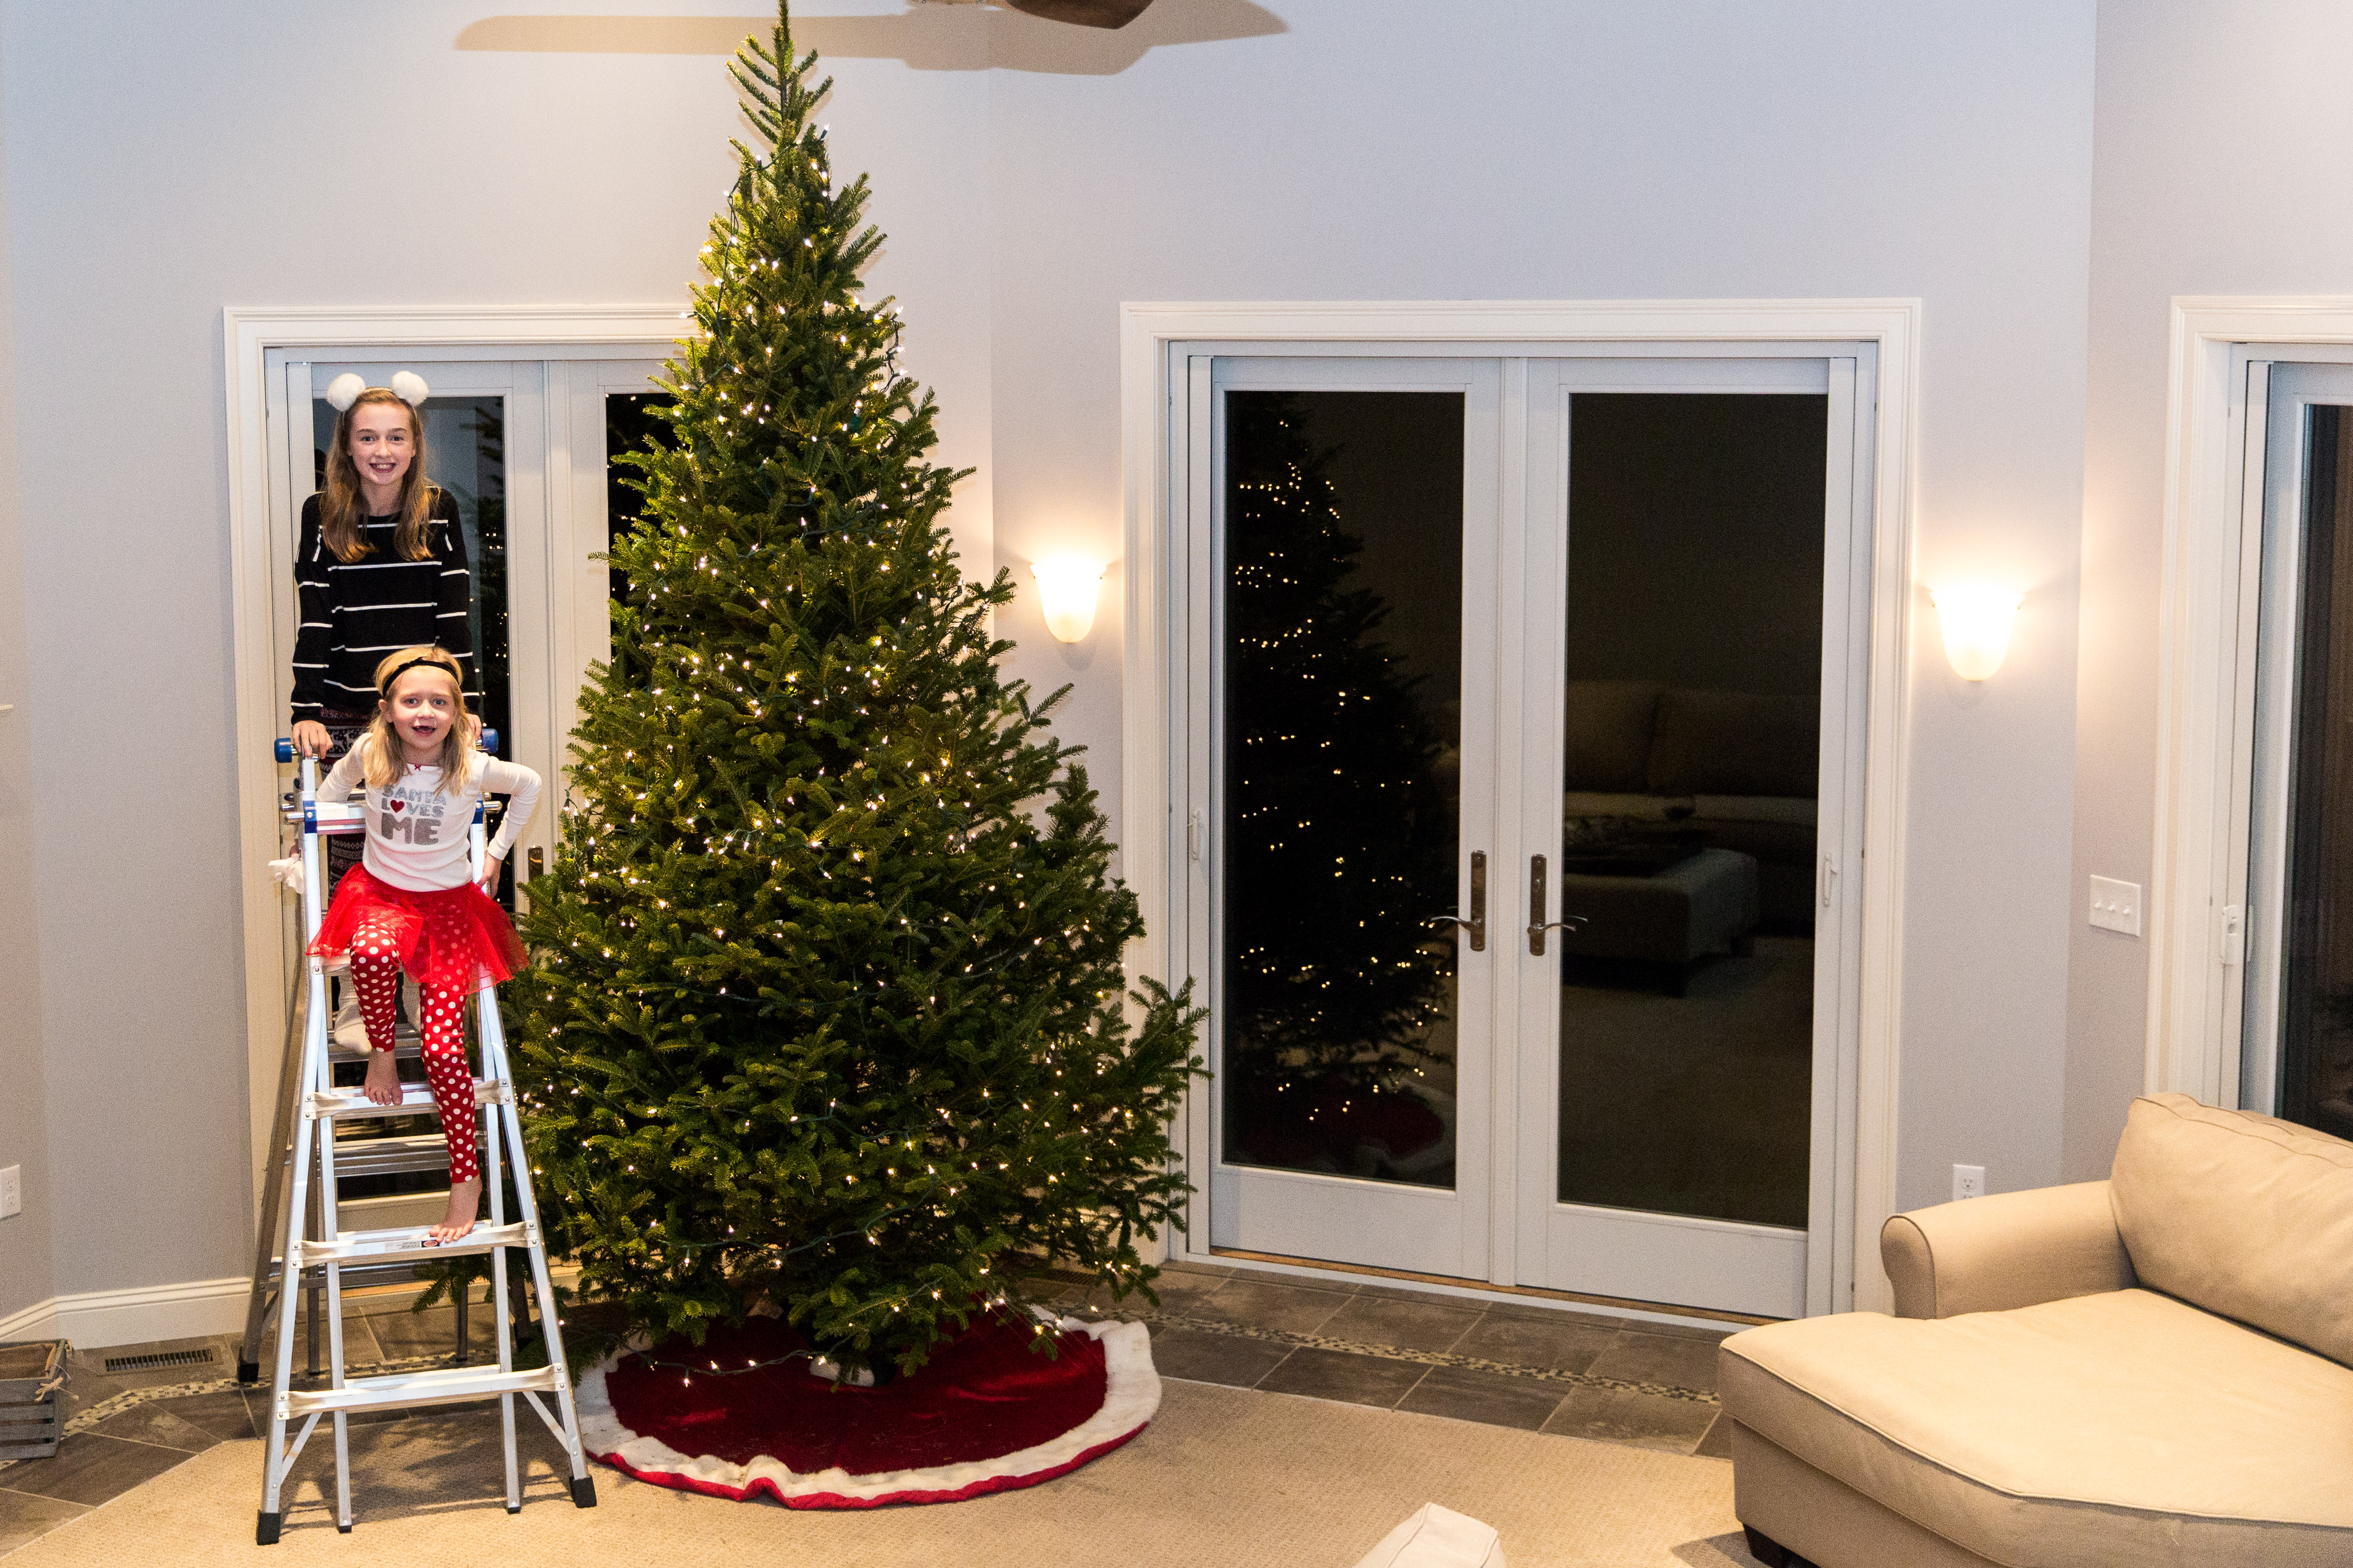 sisters sitting on ladder in front of Christmas tree with lights